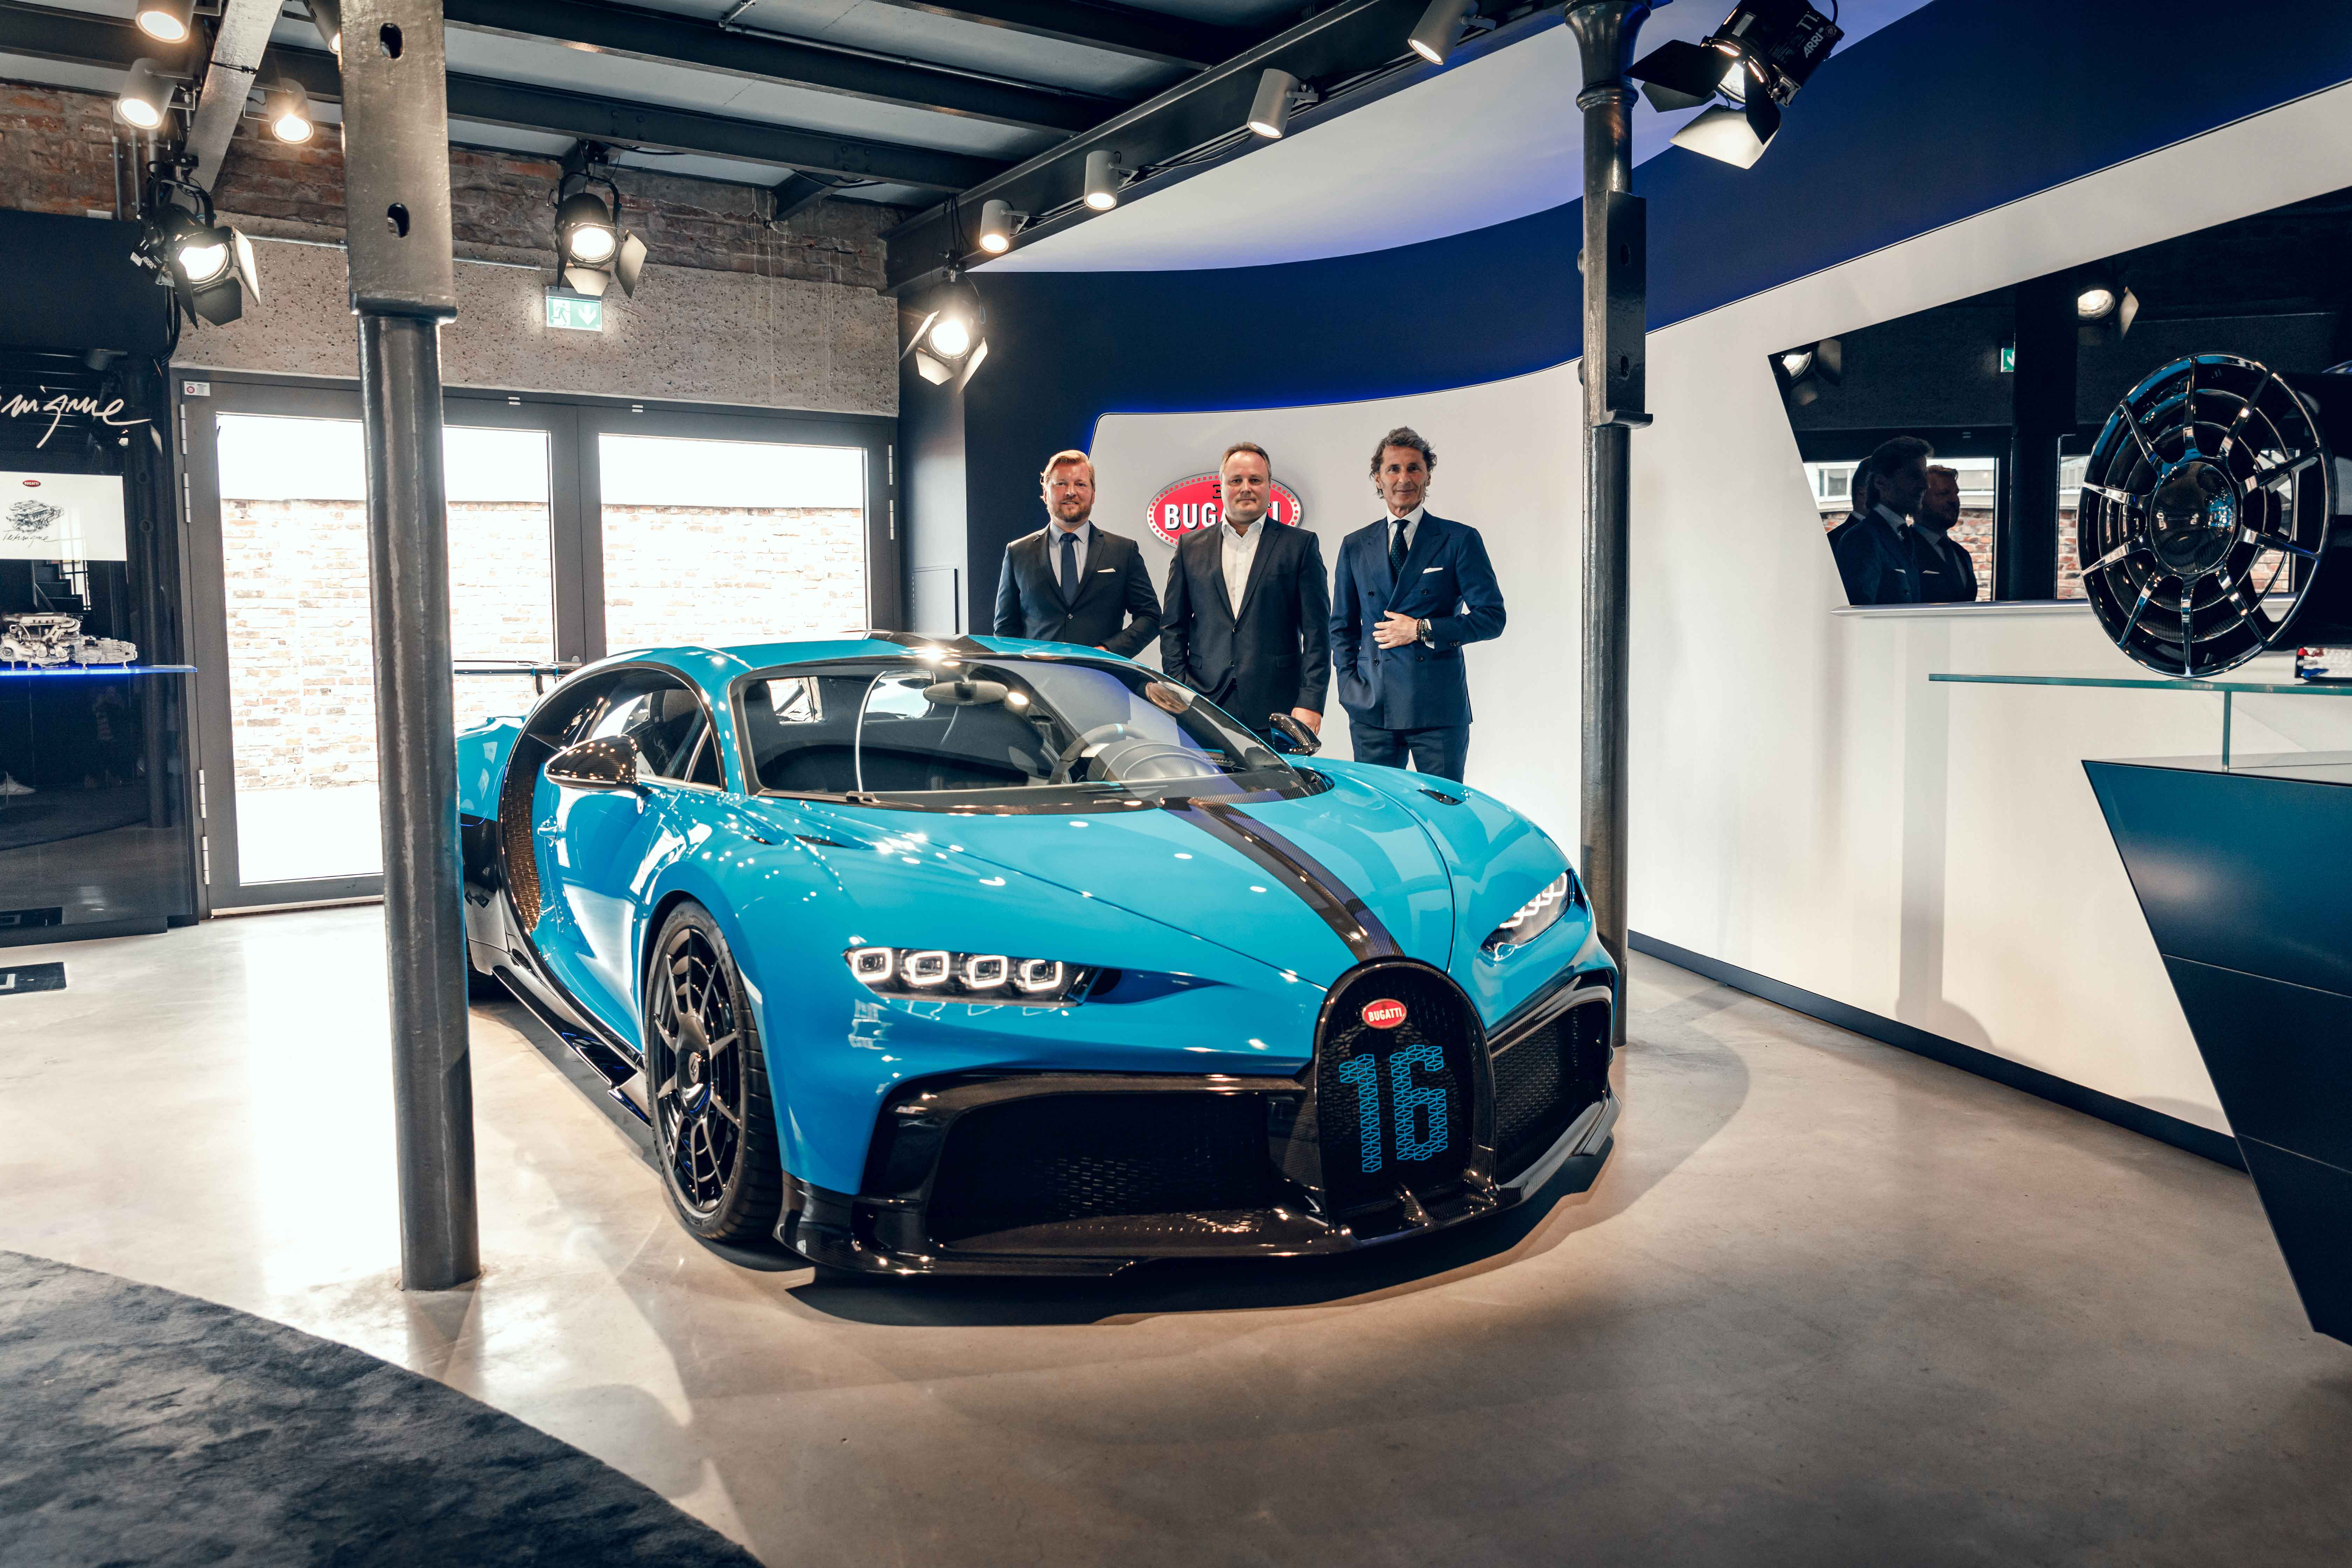 Exclusive European Road Show The Chiron Pur Sport in Frankfurt and Munich